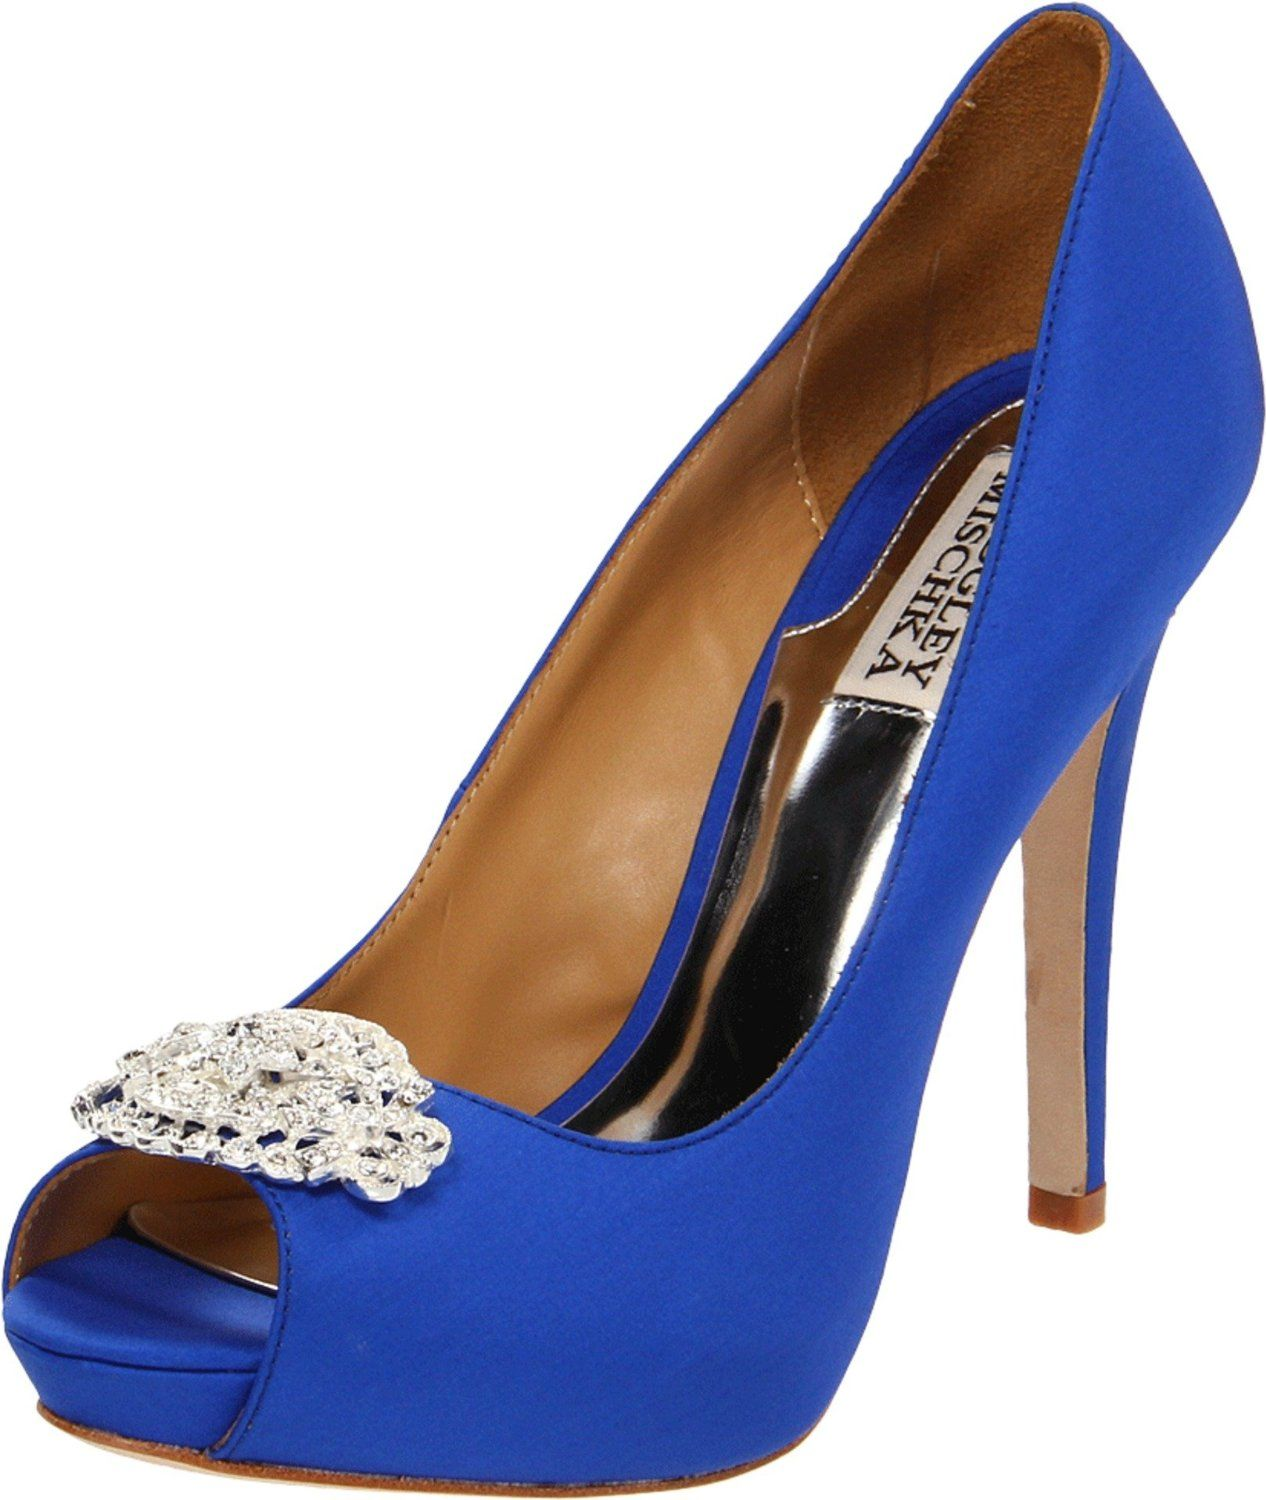 Royal blue shoes for a wedding – Top wedding blog world